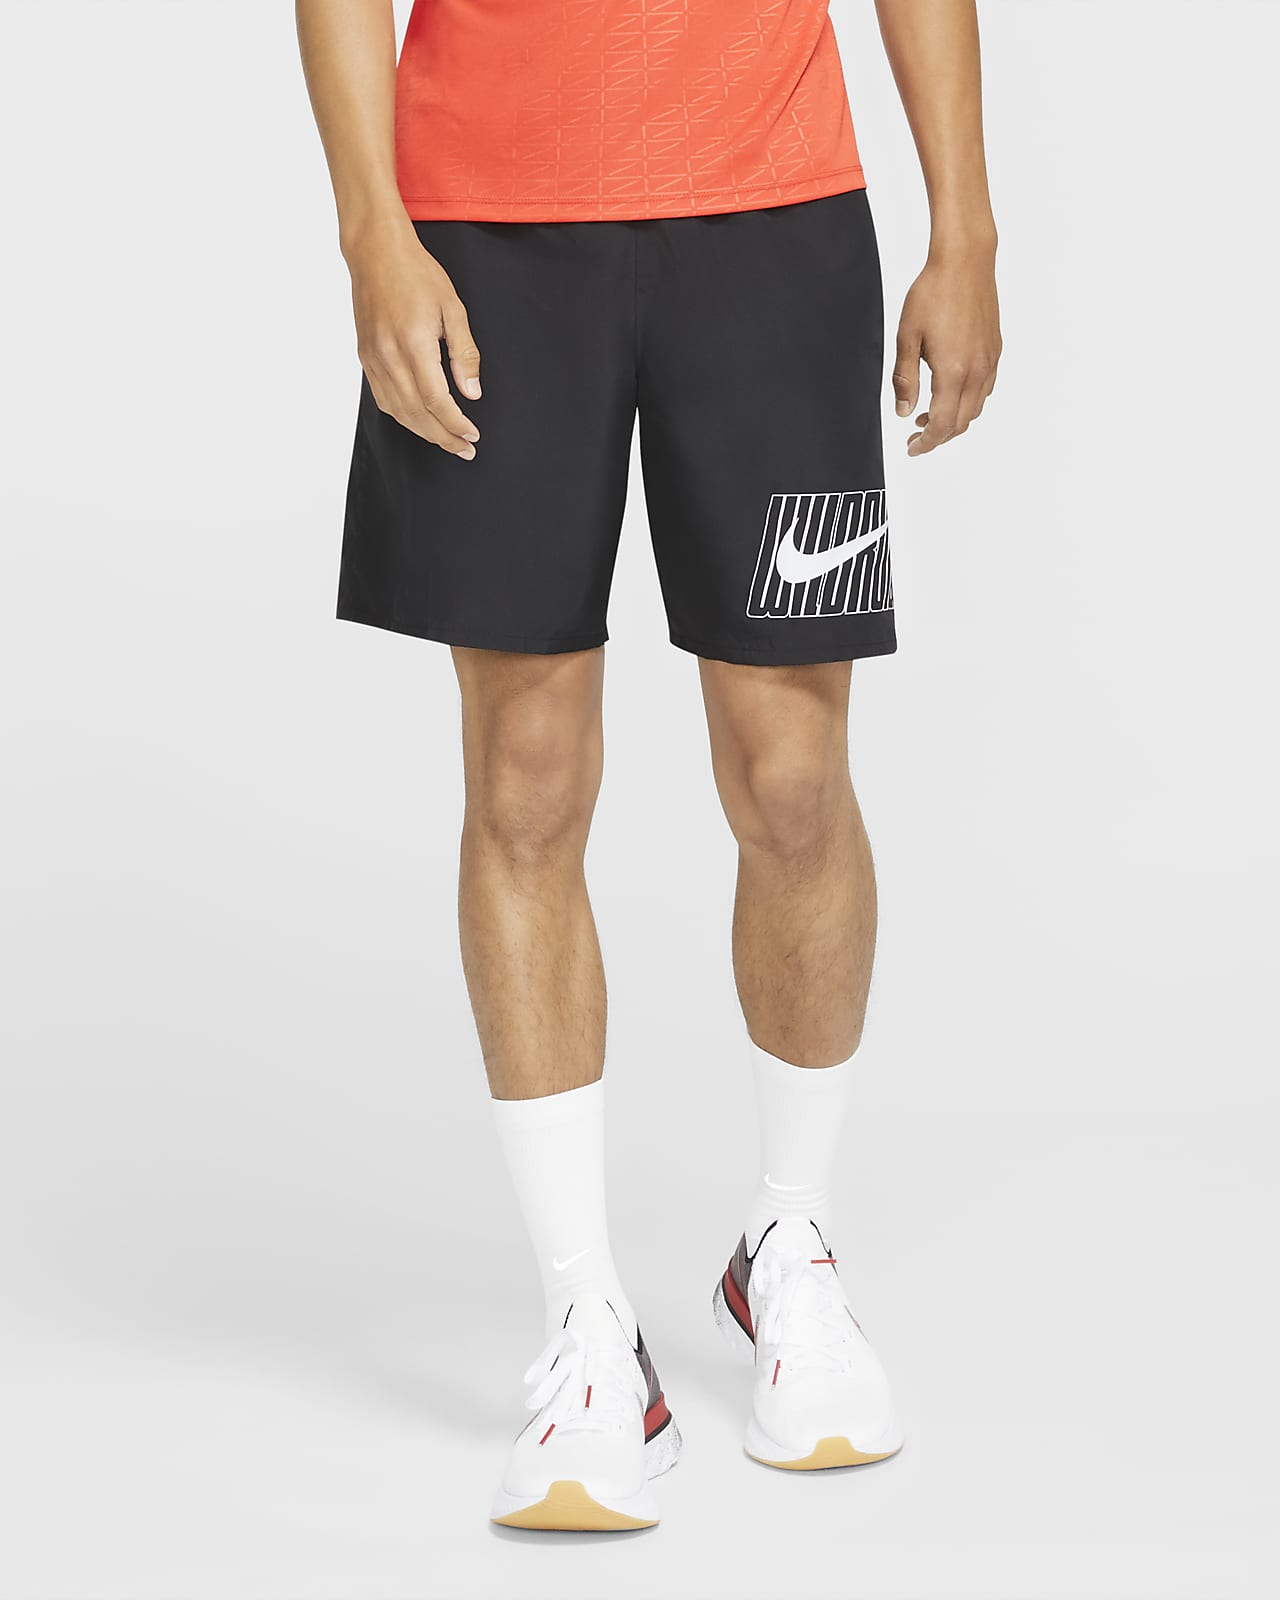 Nike Dri-FIT Run Wild Run Men's Graphic Running Shorts